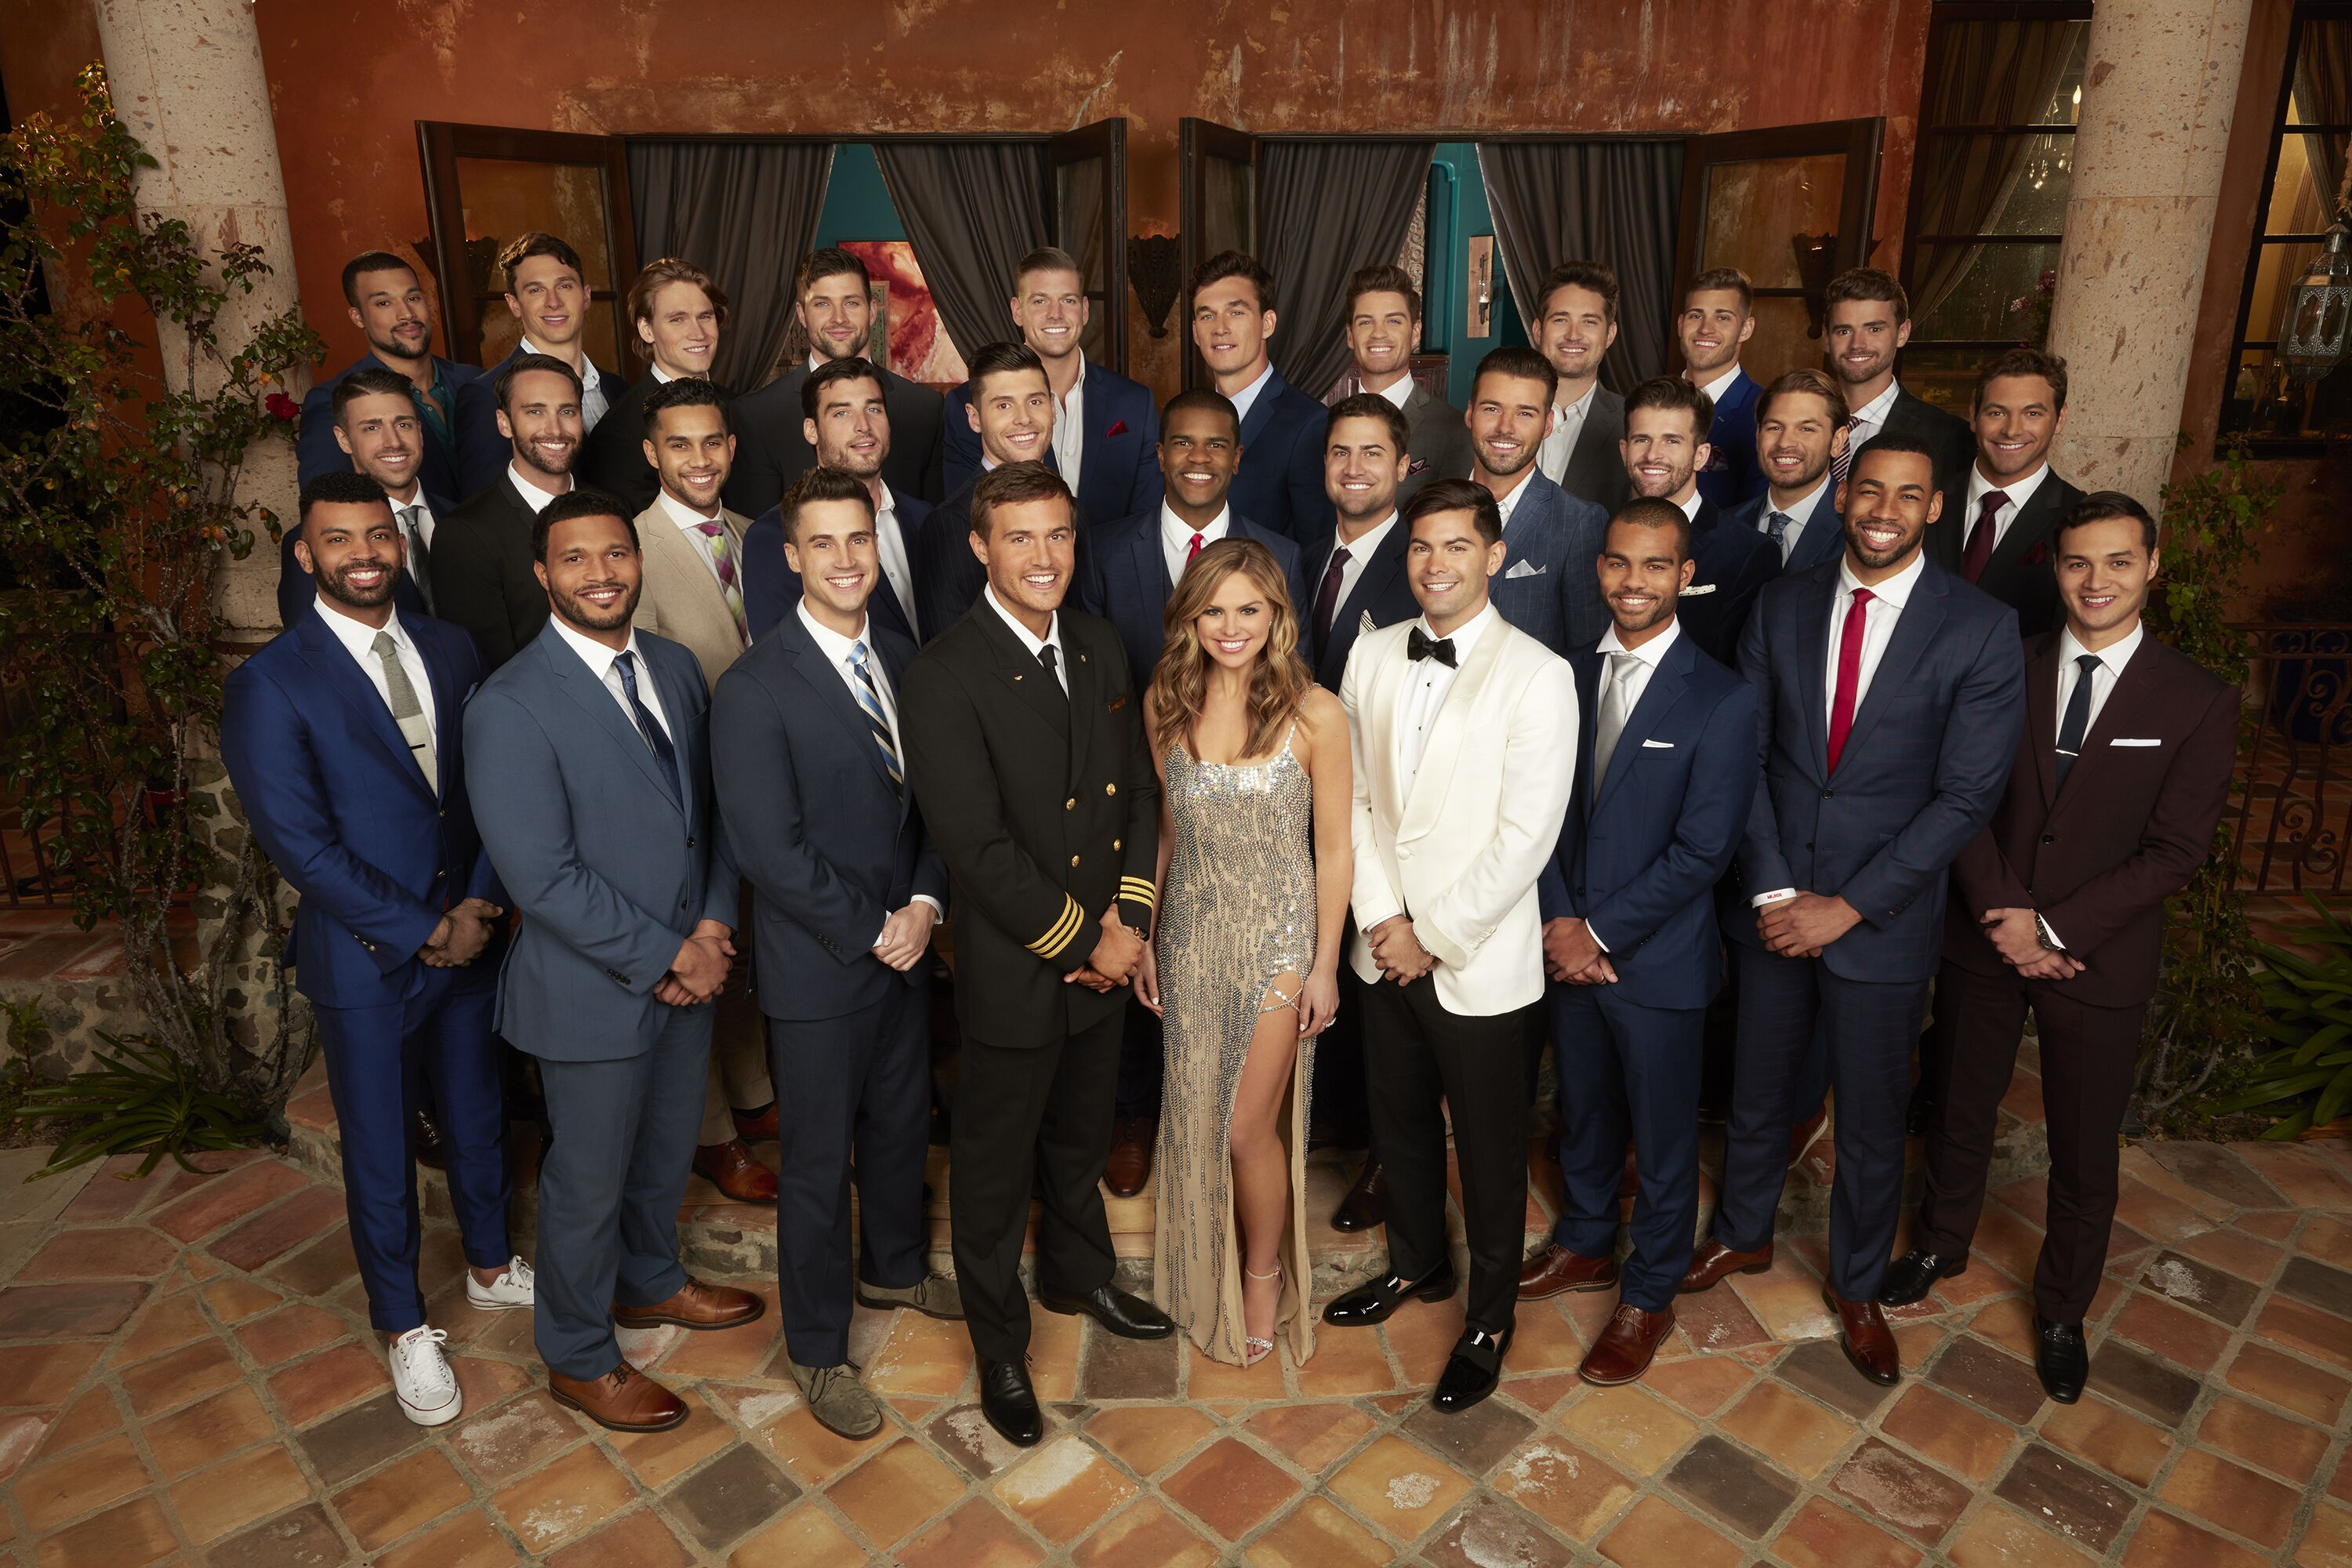 The Bachelorette Season 15, Episode 11 live stream: How to watch